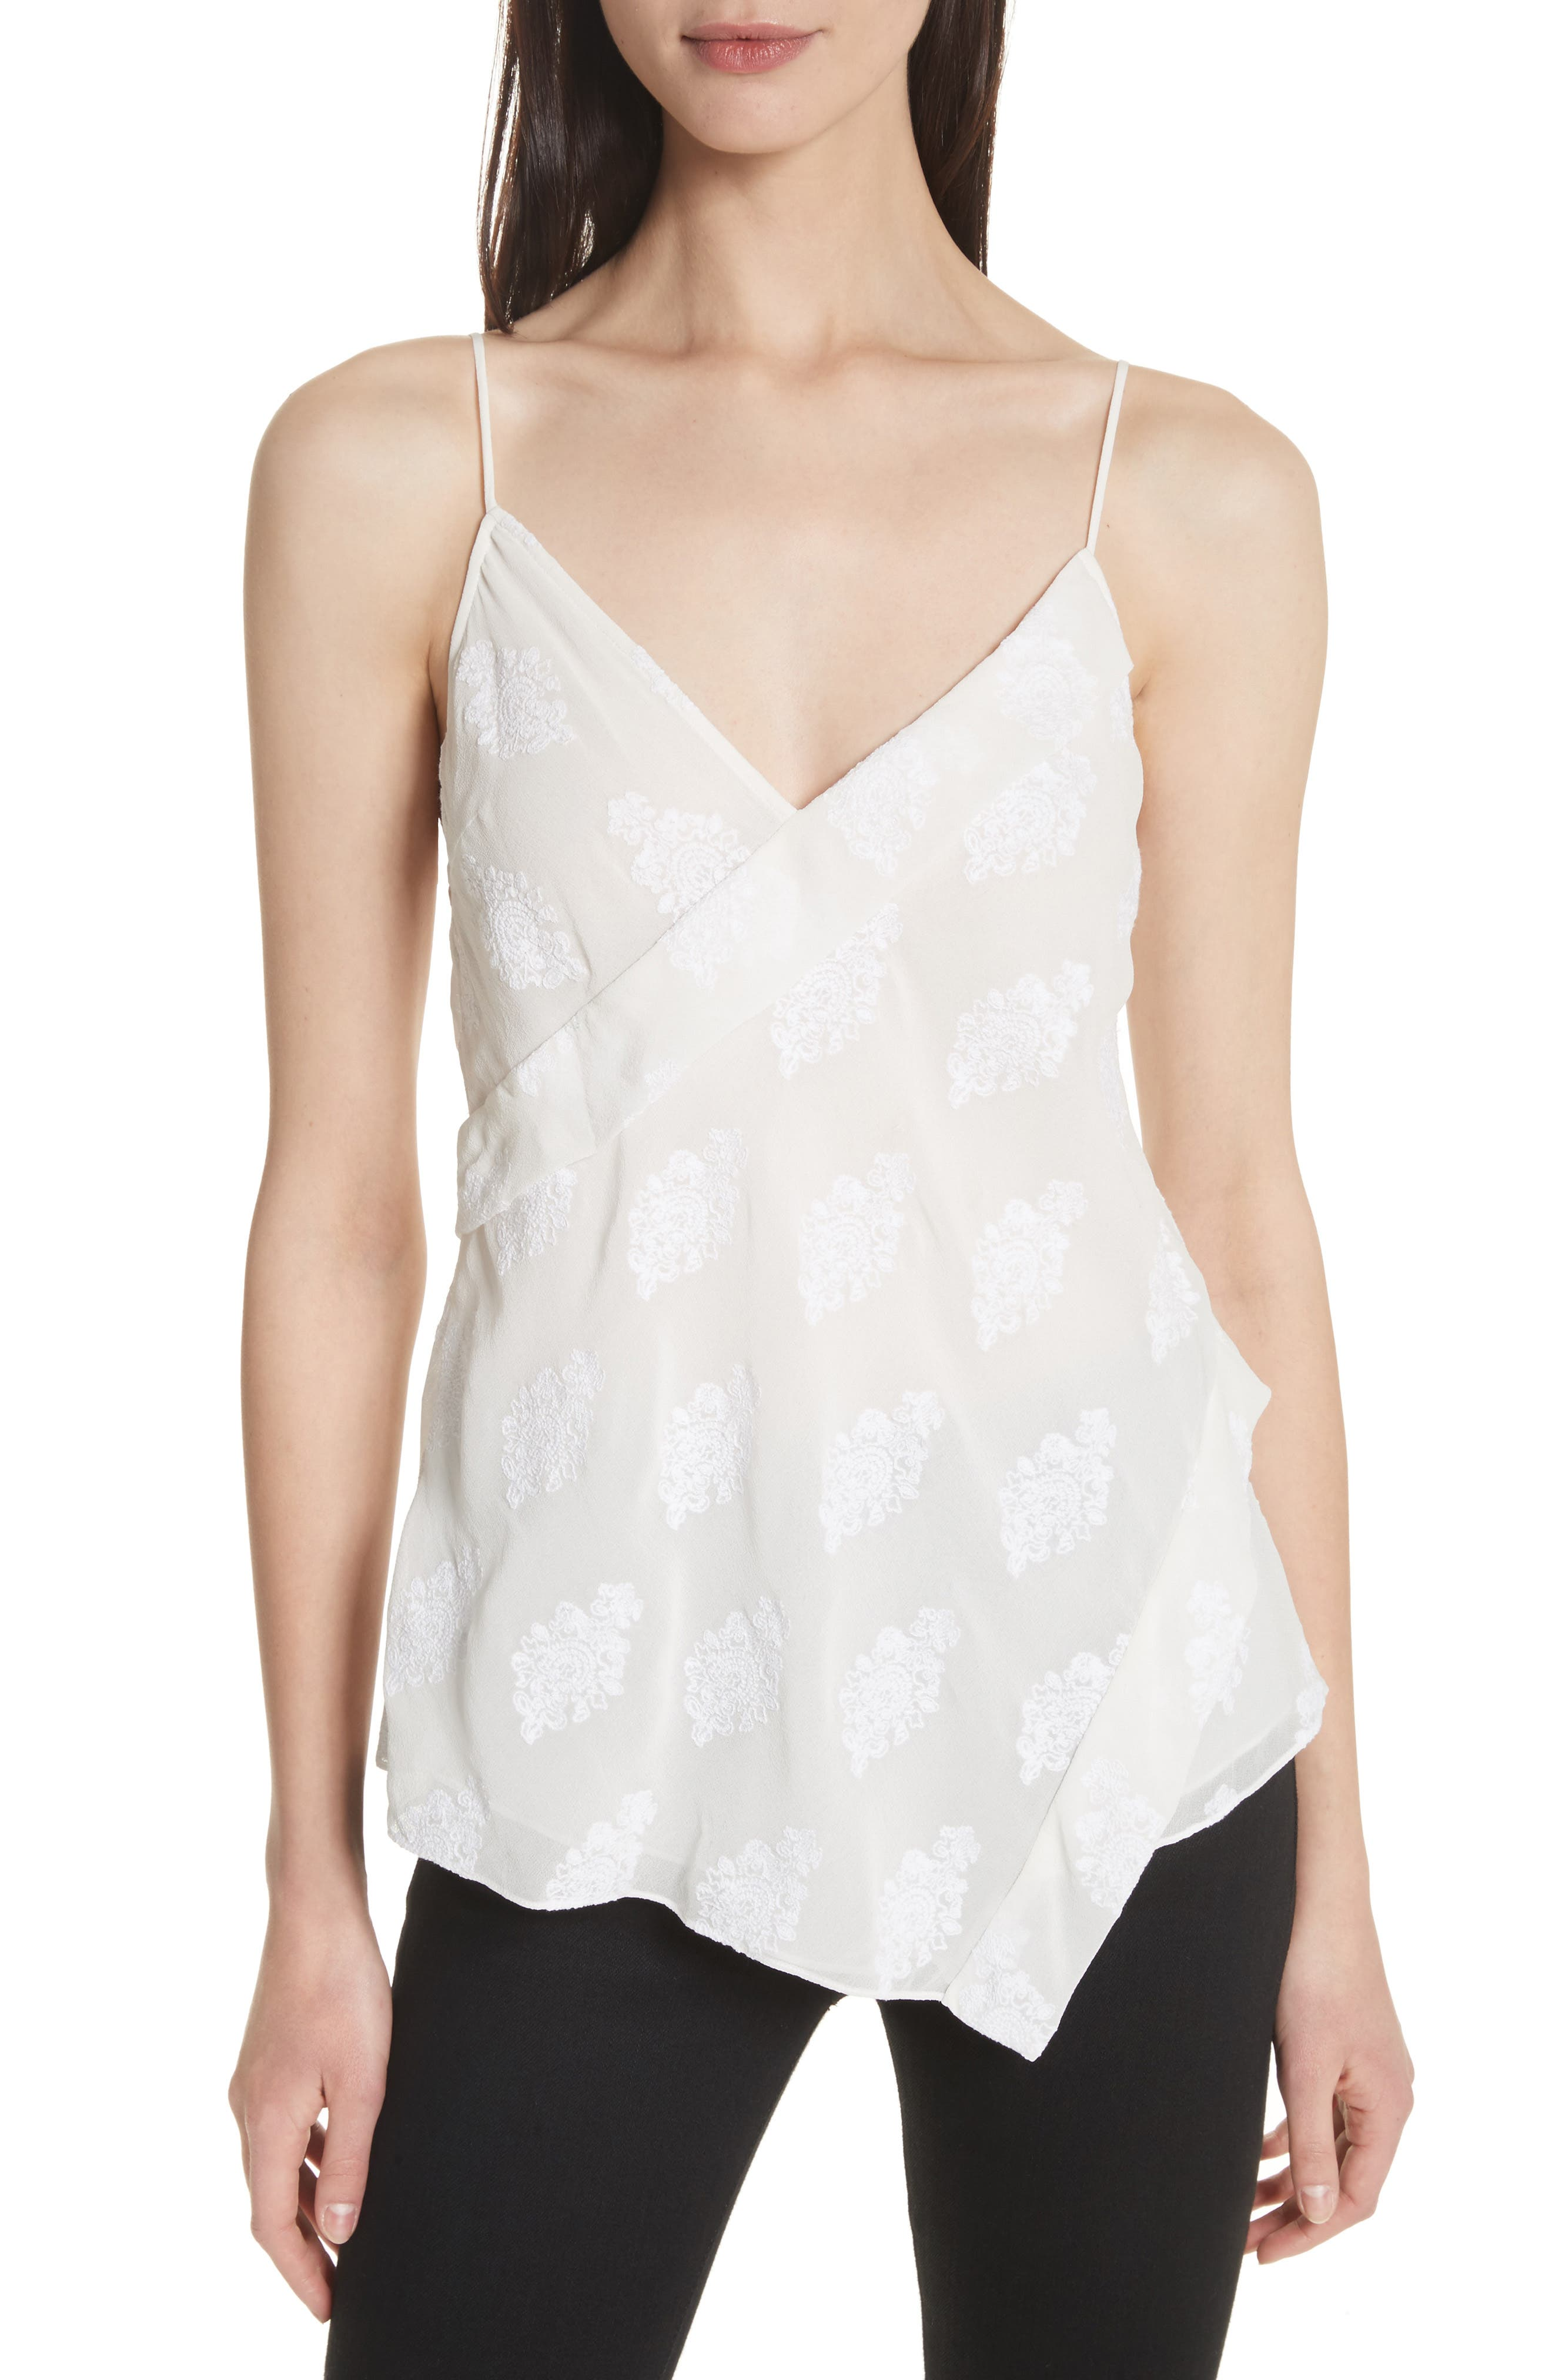 C2.Co Crossover Camisole,                             Main thumbnail 1, color,                             White/ White